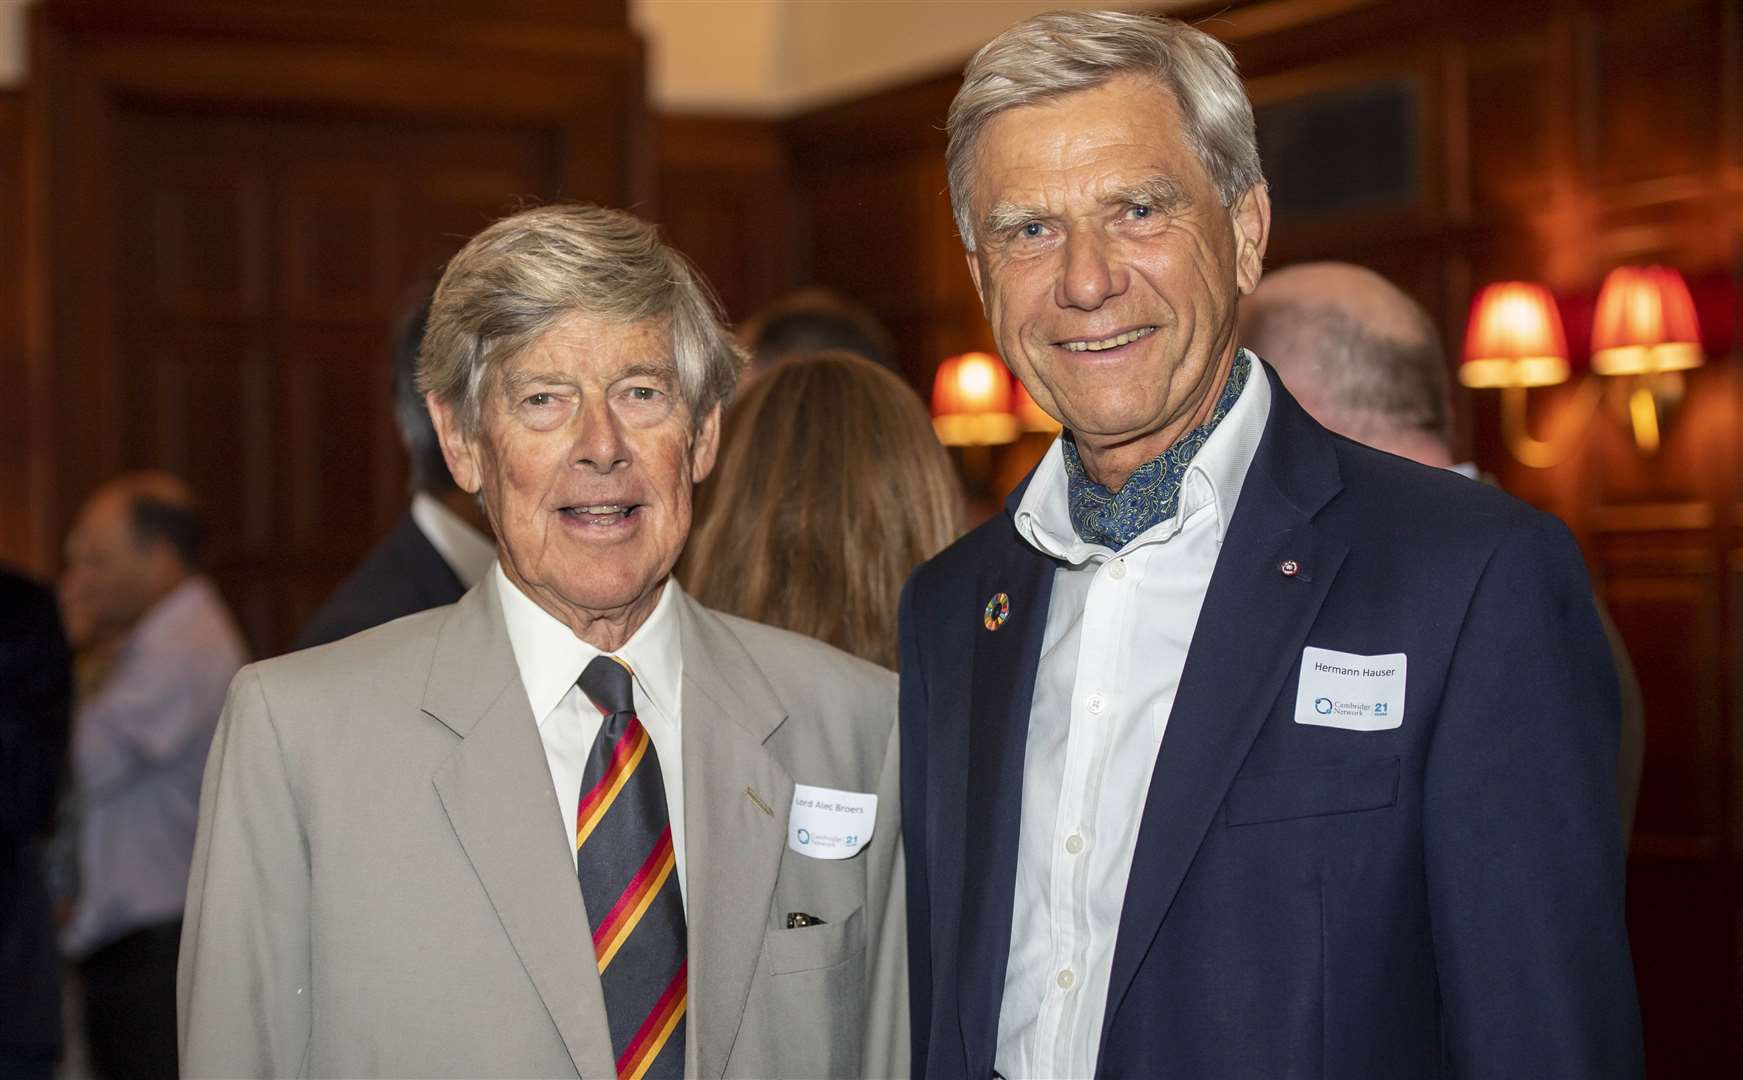 Lord Alec Broers and Hermann Hauser at Cambridge Network's 21st anniversary at the University Arms earlier this year. Picture: Keith Heppell